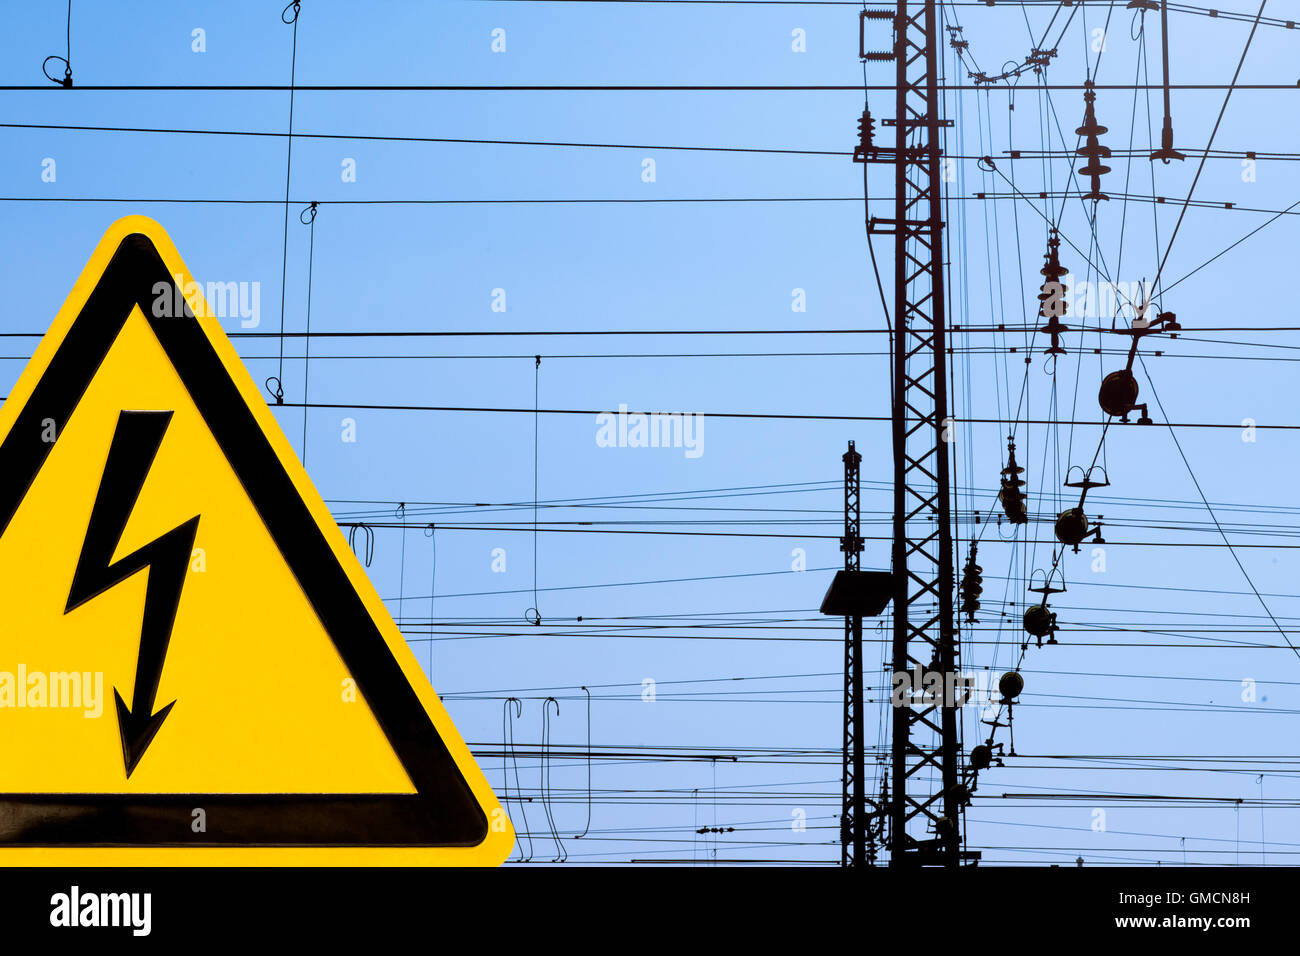 hight resolution of high voltage sign and railway overhead wiring